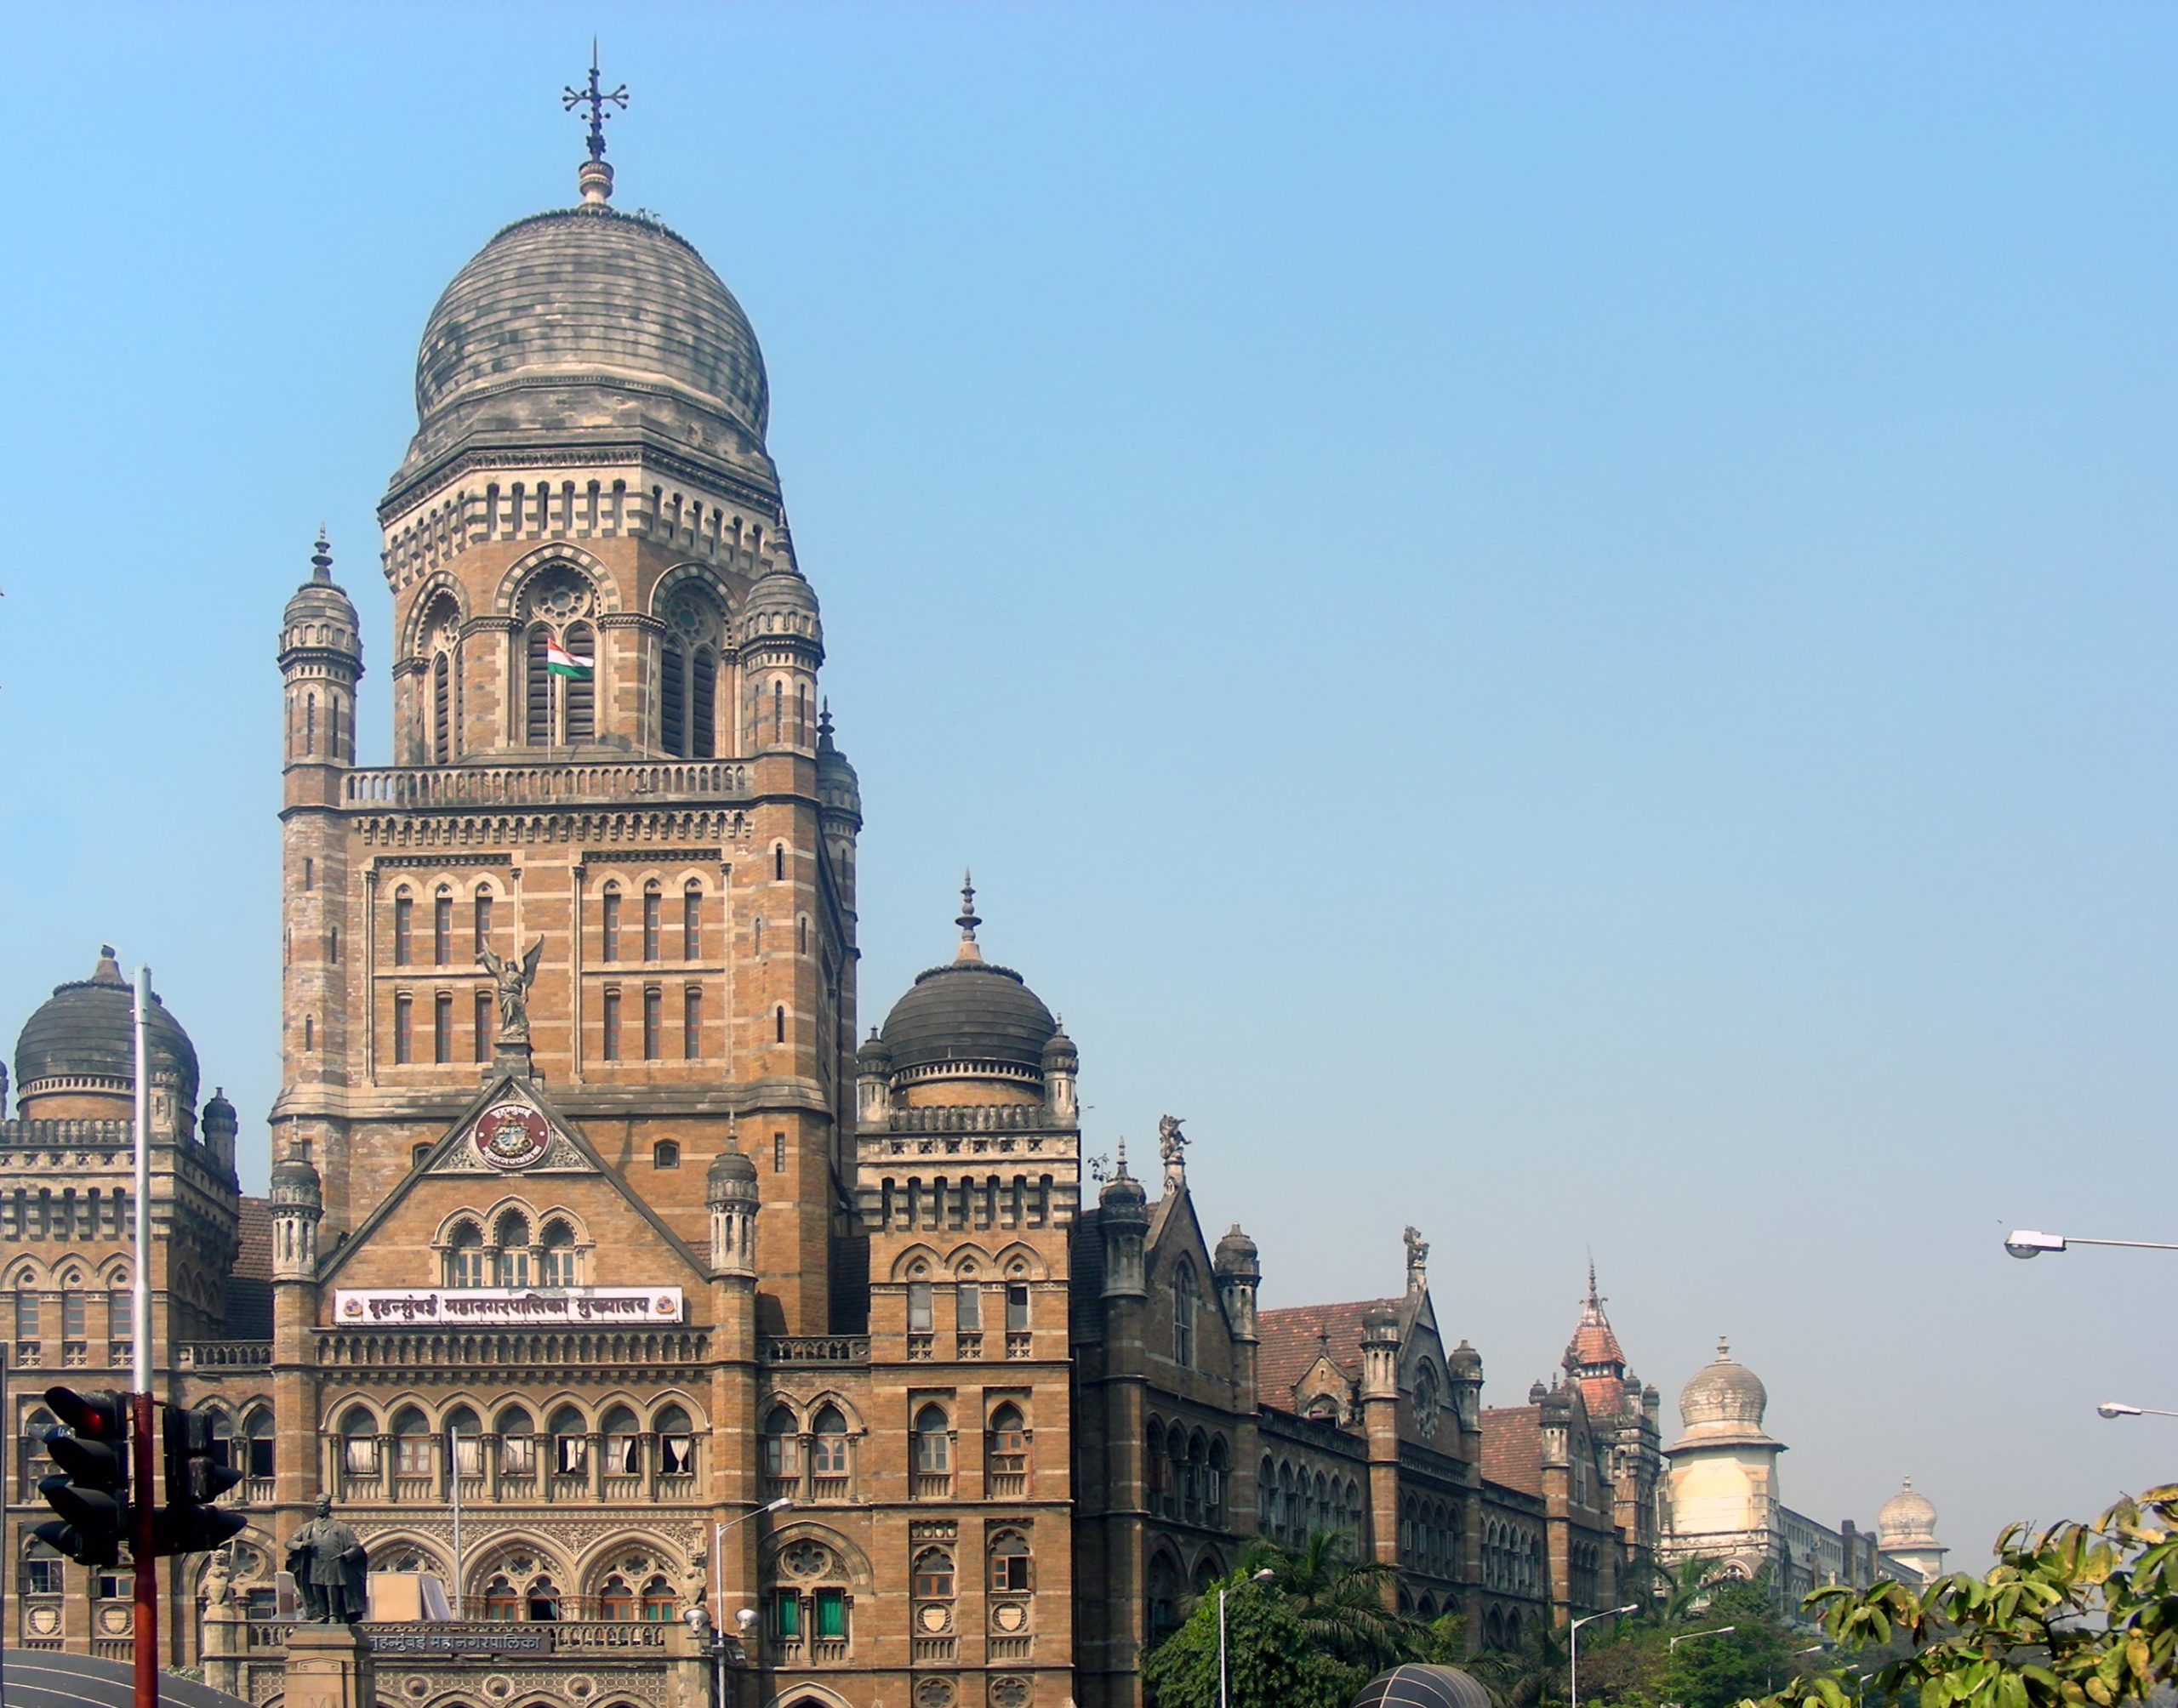 goverment-stufy-bmc-scaled.jpg